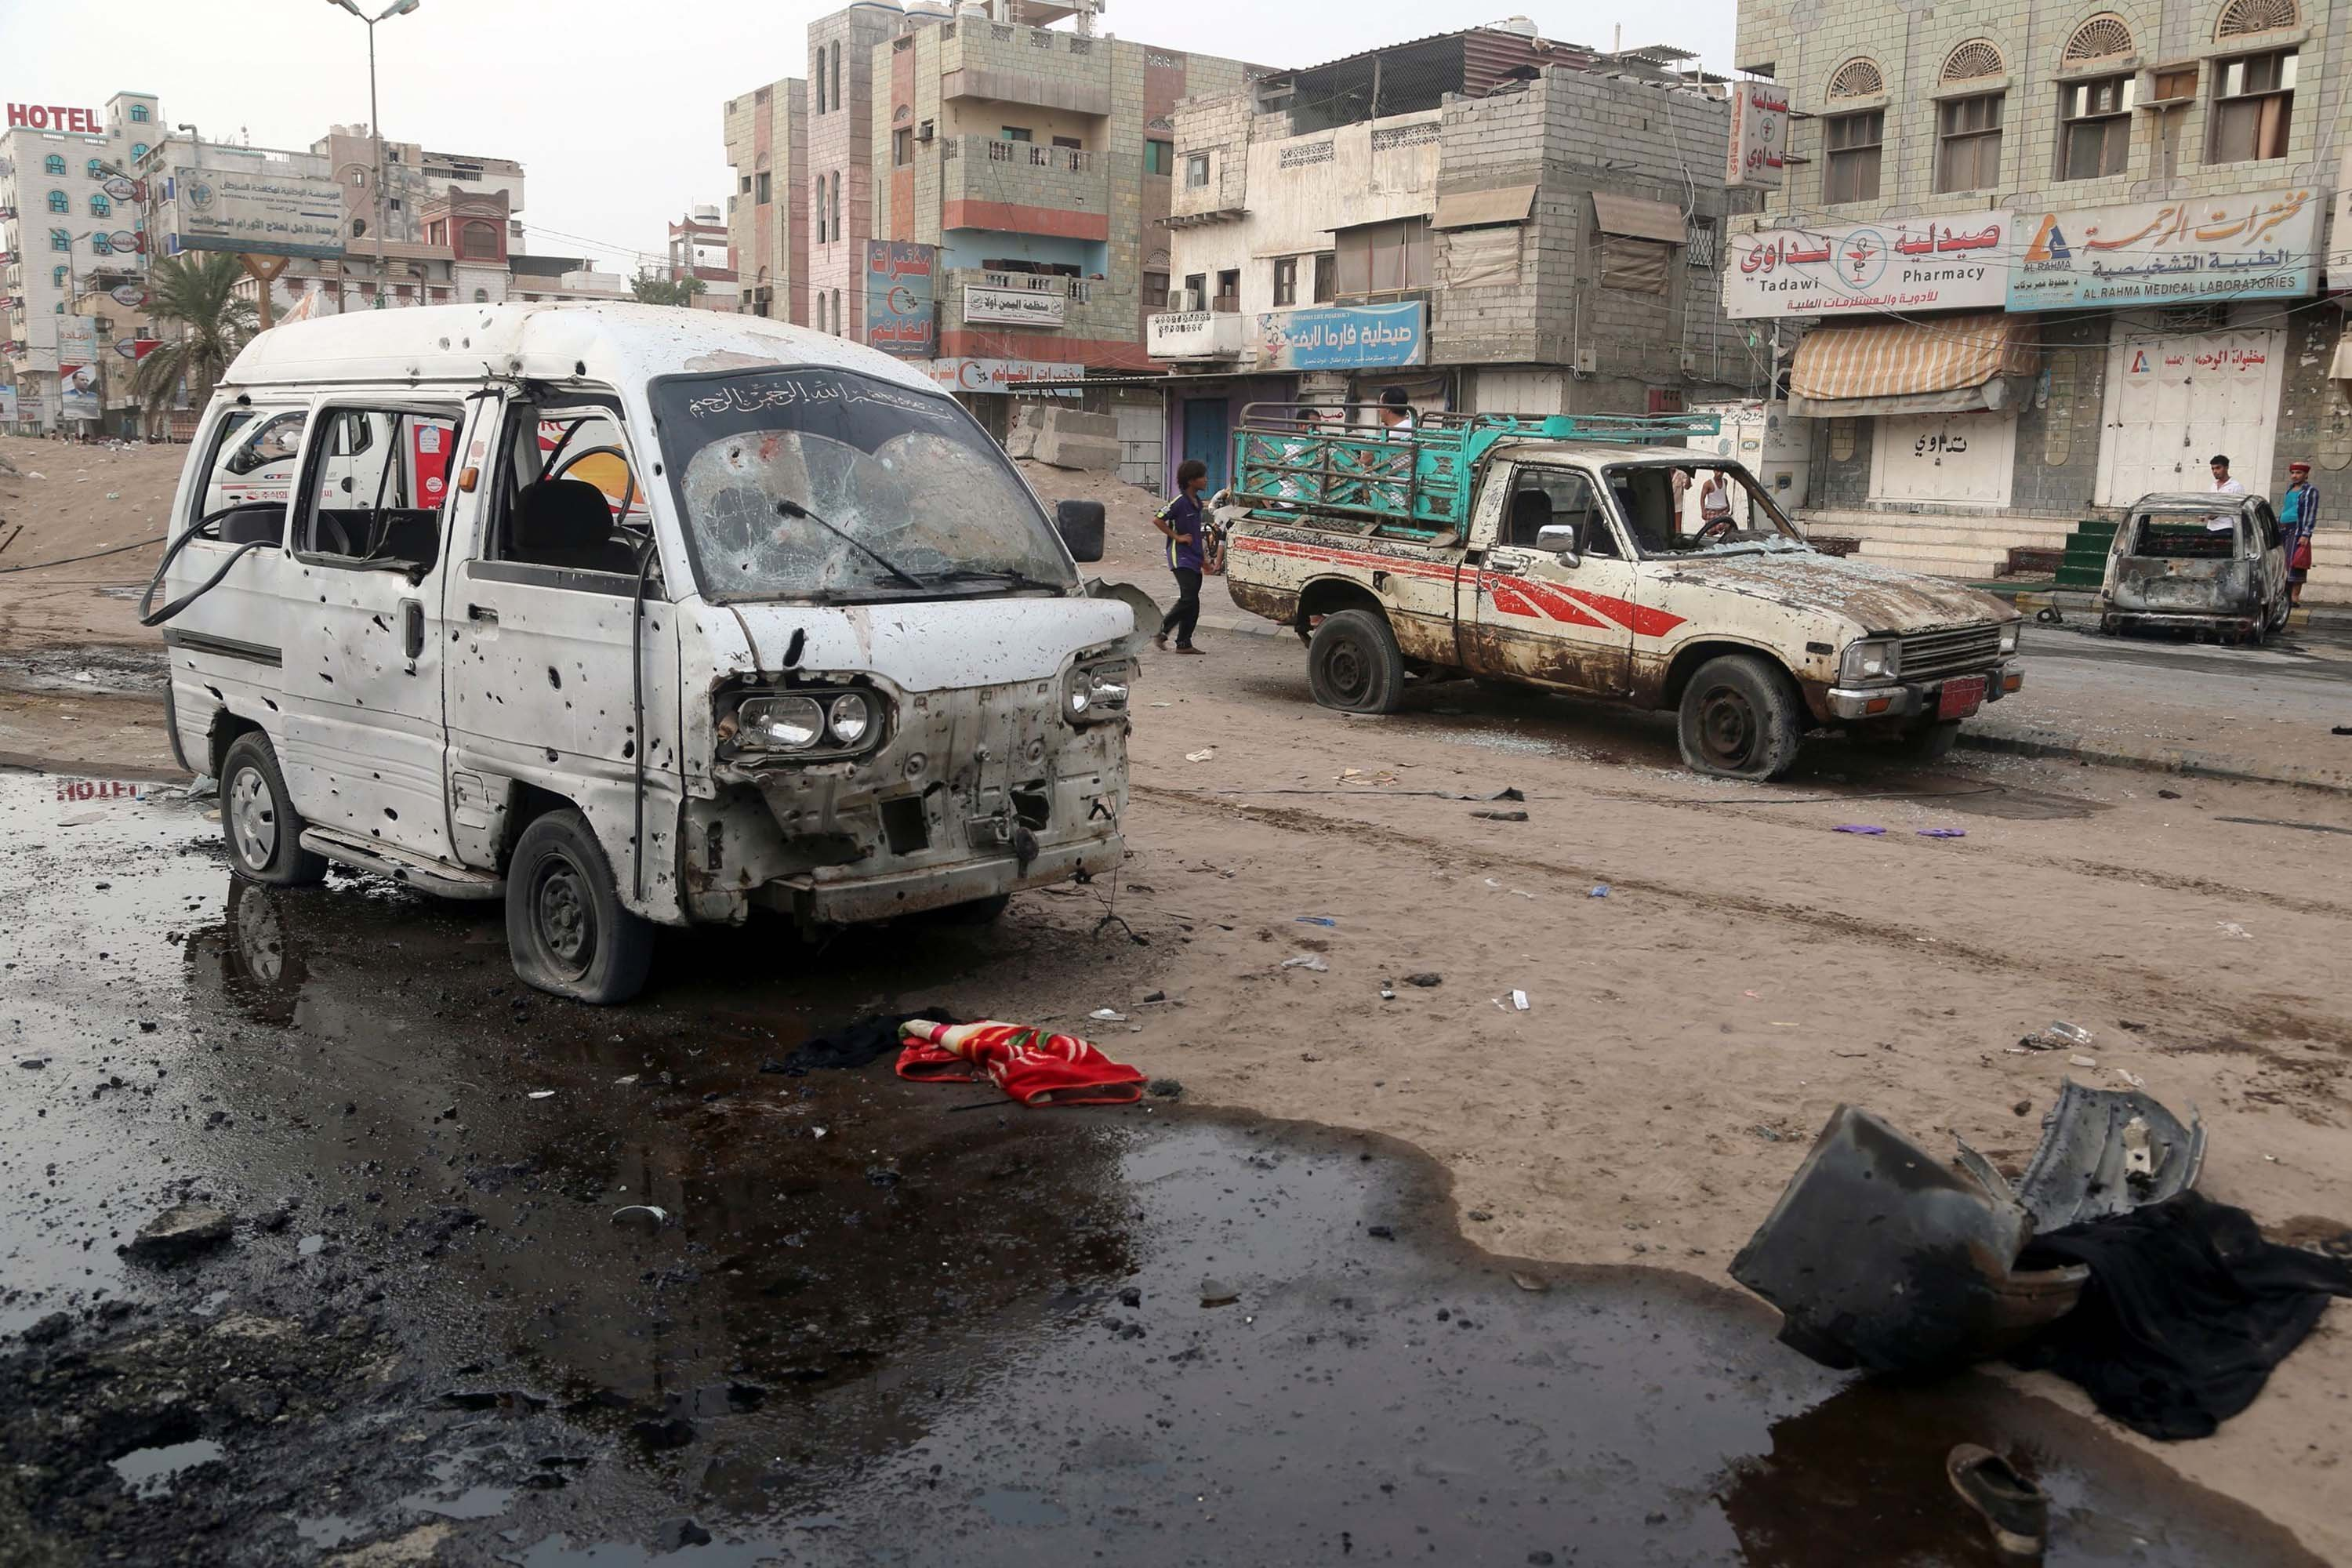 The airstrike on Thursday hit a bus carrying children from a summer camp in a busy market area in the northern Majz District, UN spokesman Farhan Haq said in a statement.